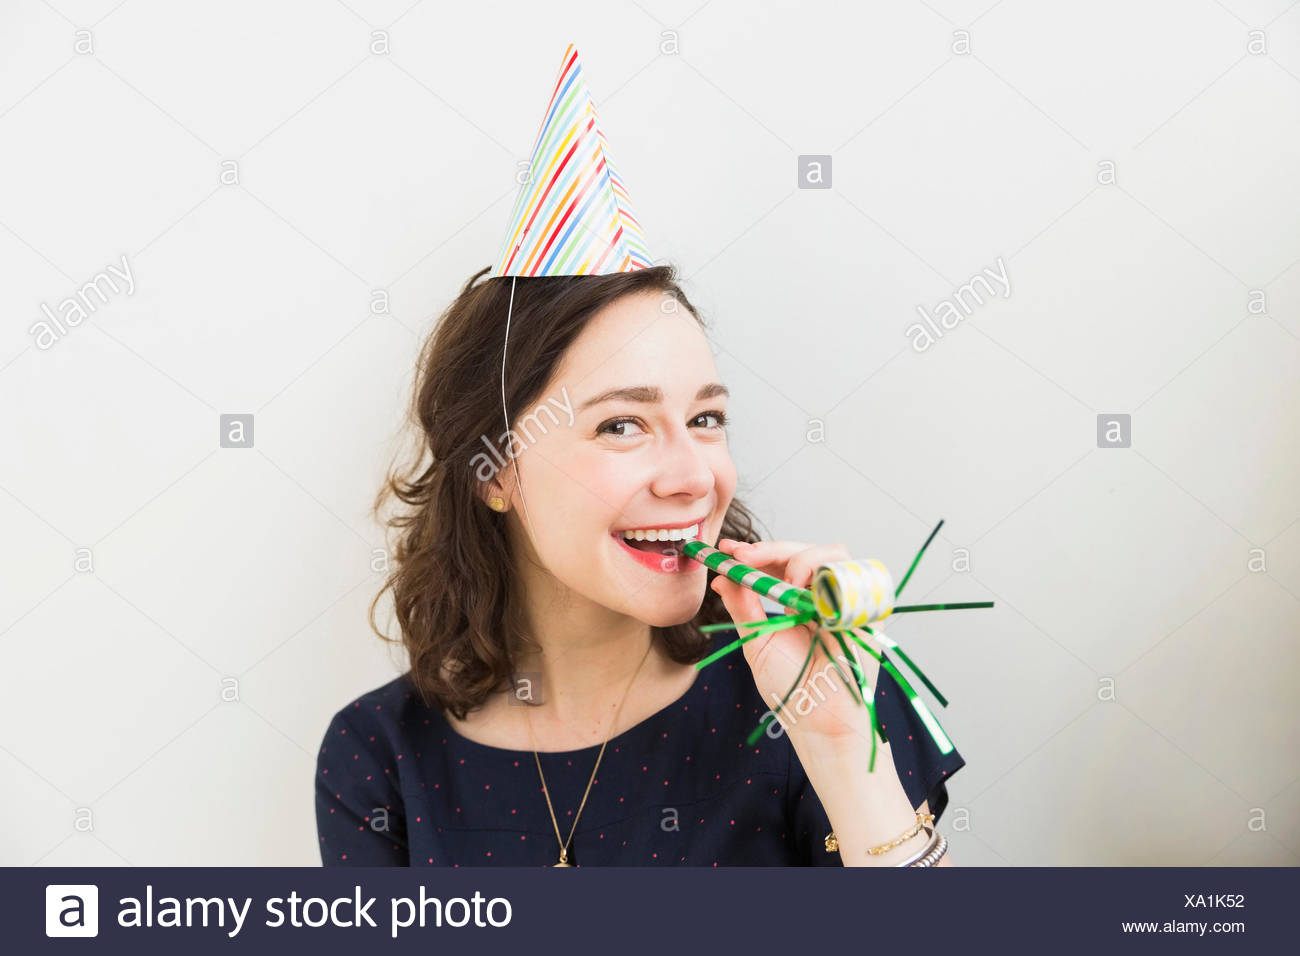 Smiling young woman with party horn surpresseur Photo Stock